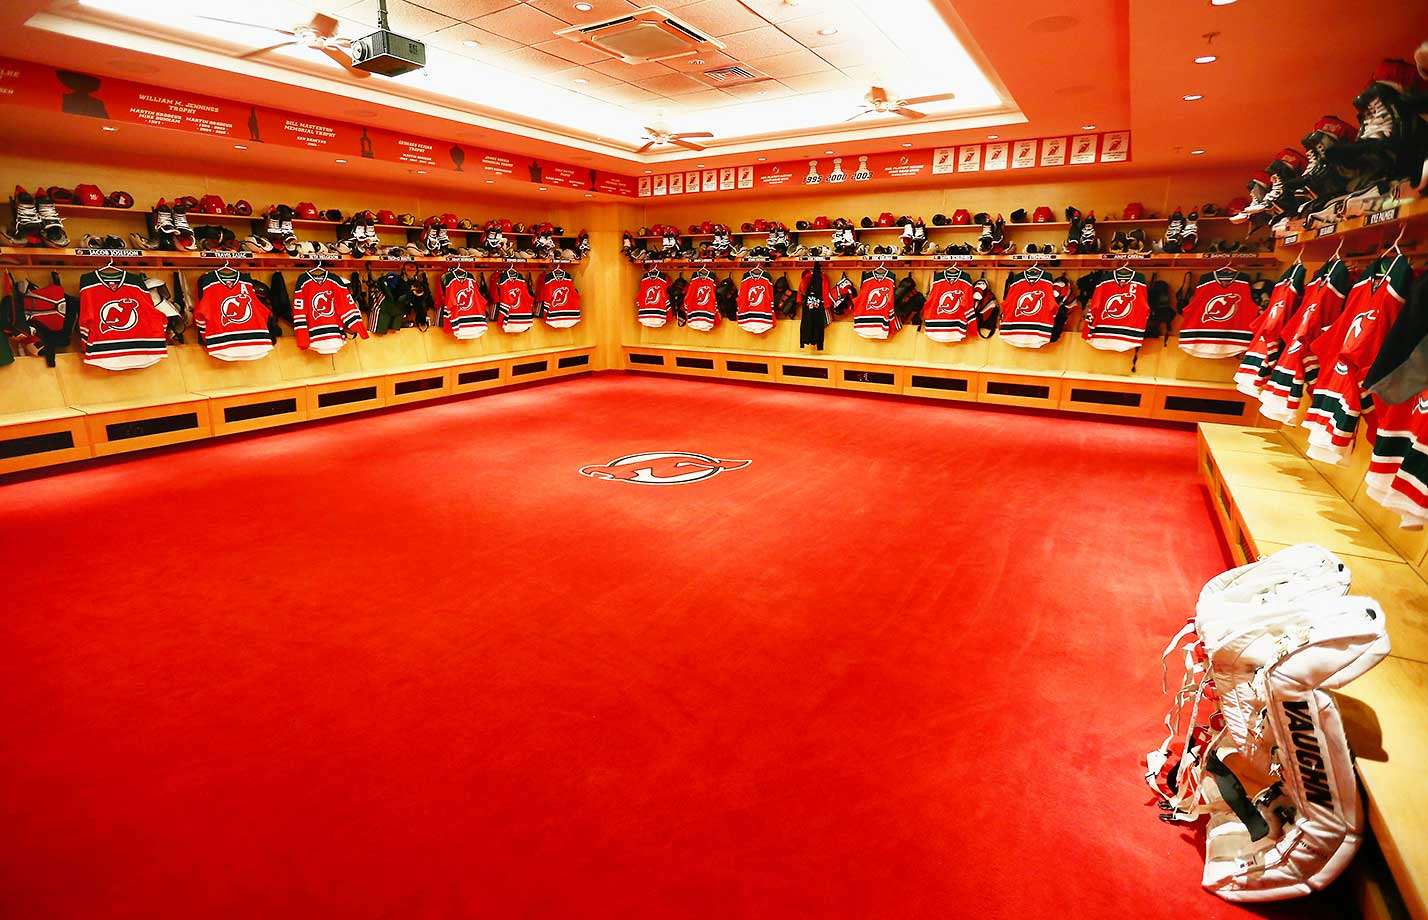 A general view of the New Jersey Devils locker room displaying the retro jerseys that would be worn against Philadelphia.